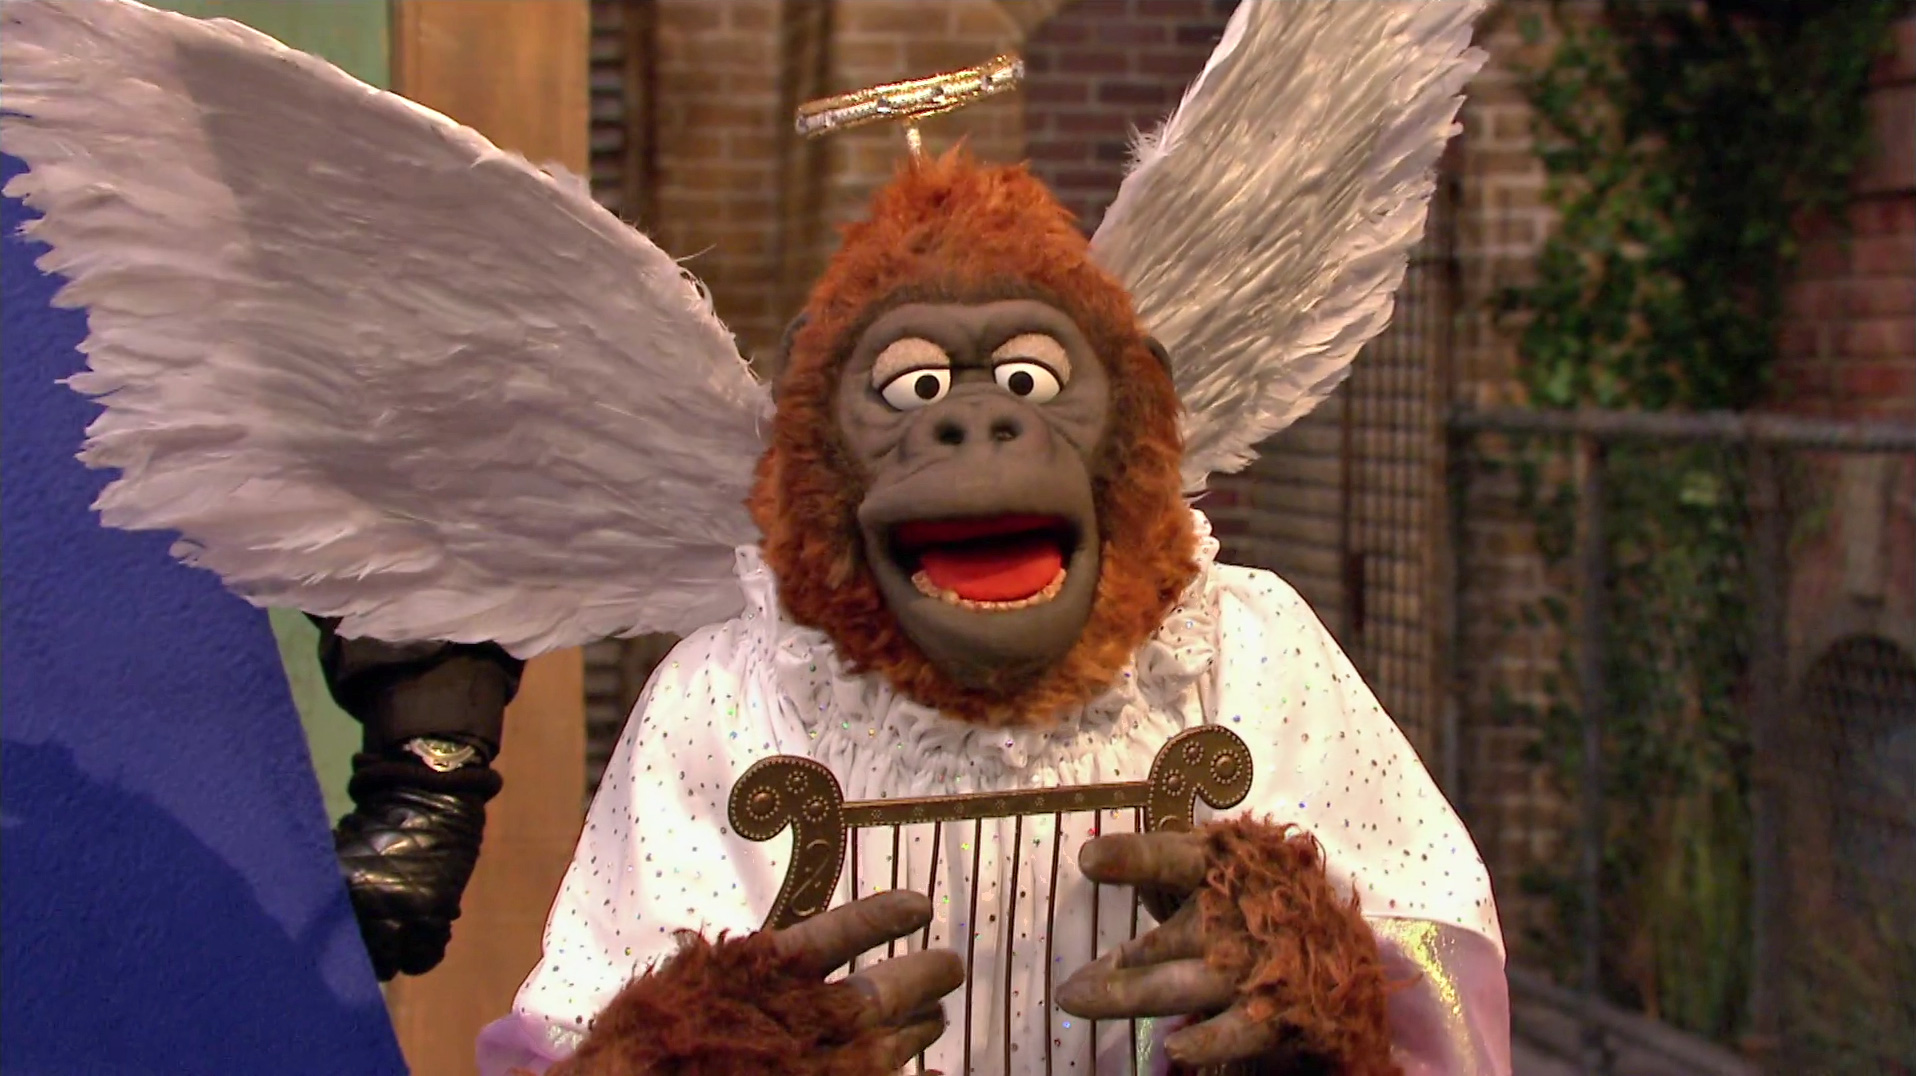 An ape dressed as an angel singing about acorns